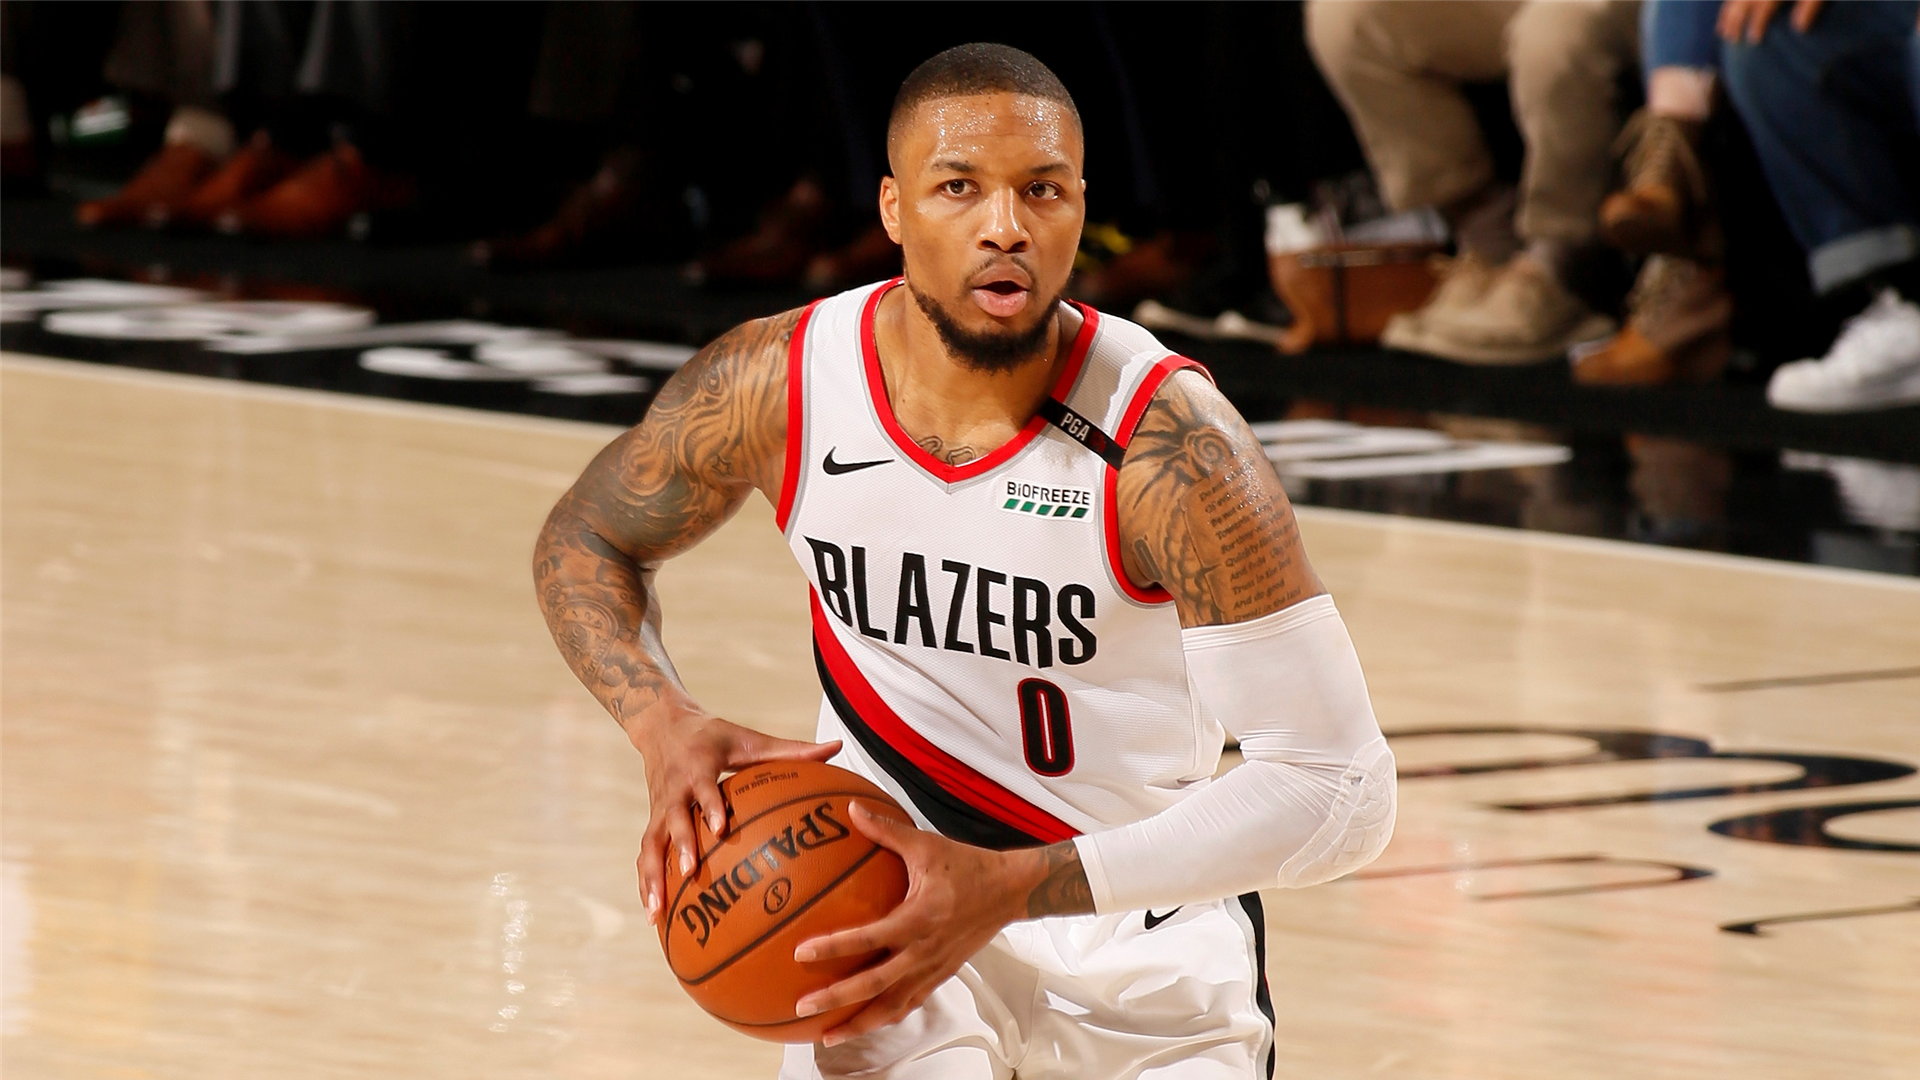 NBA Playoffs 2019: Portland Trail Blazers chase the impossible trailing the Golden State Warriors 3-0